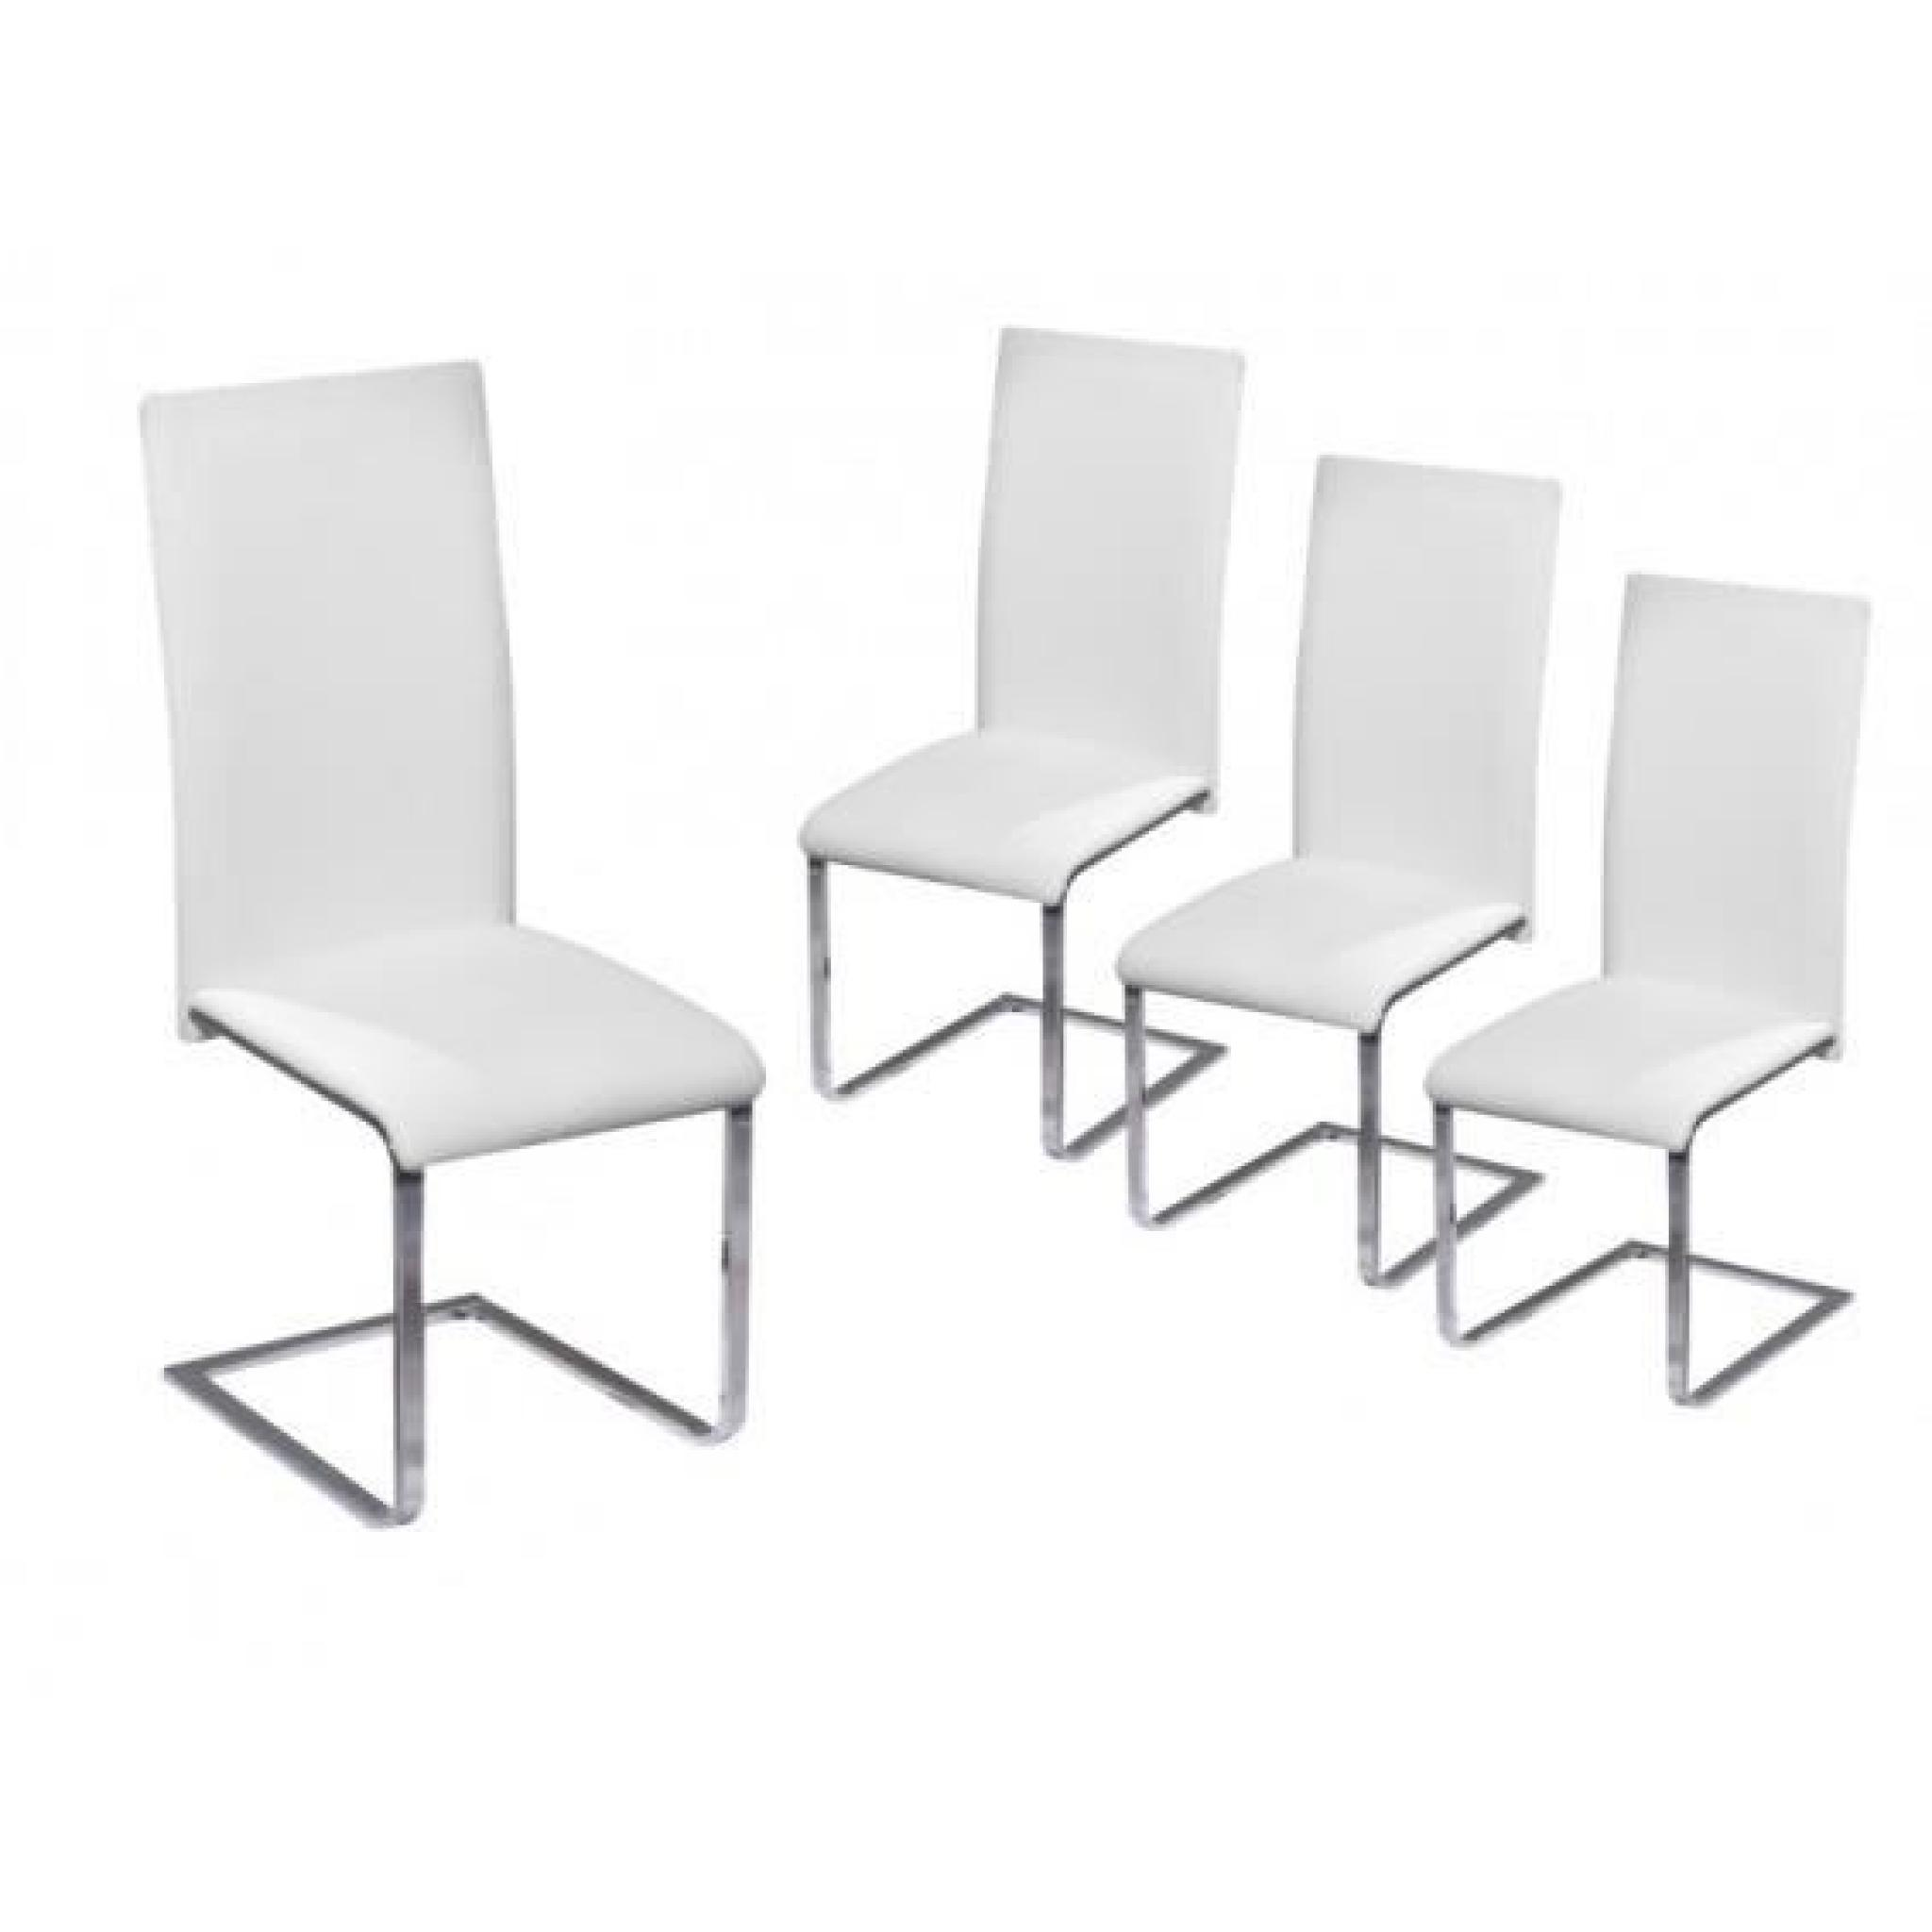 Brooklyn lot 4 chaises blanches achat vente chaise - Lot 4 chaises blanches ...